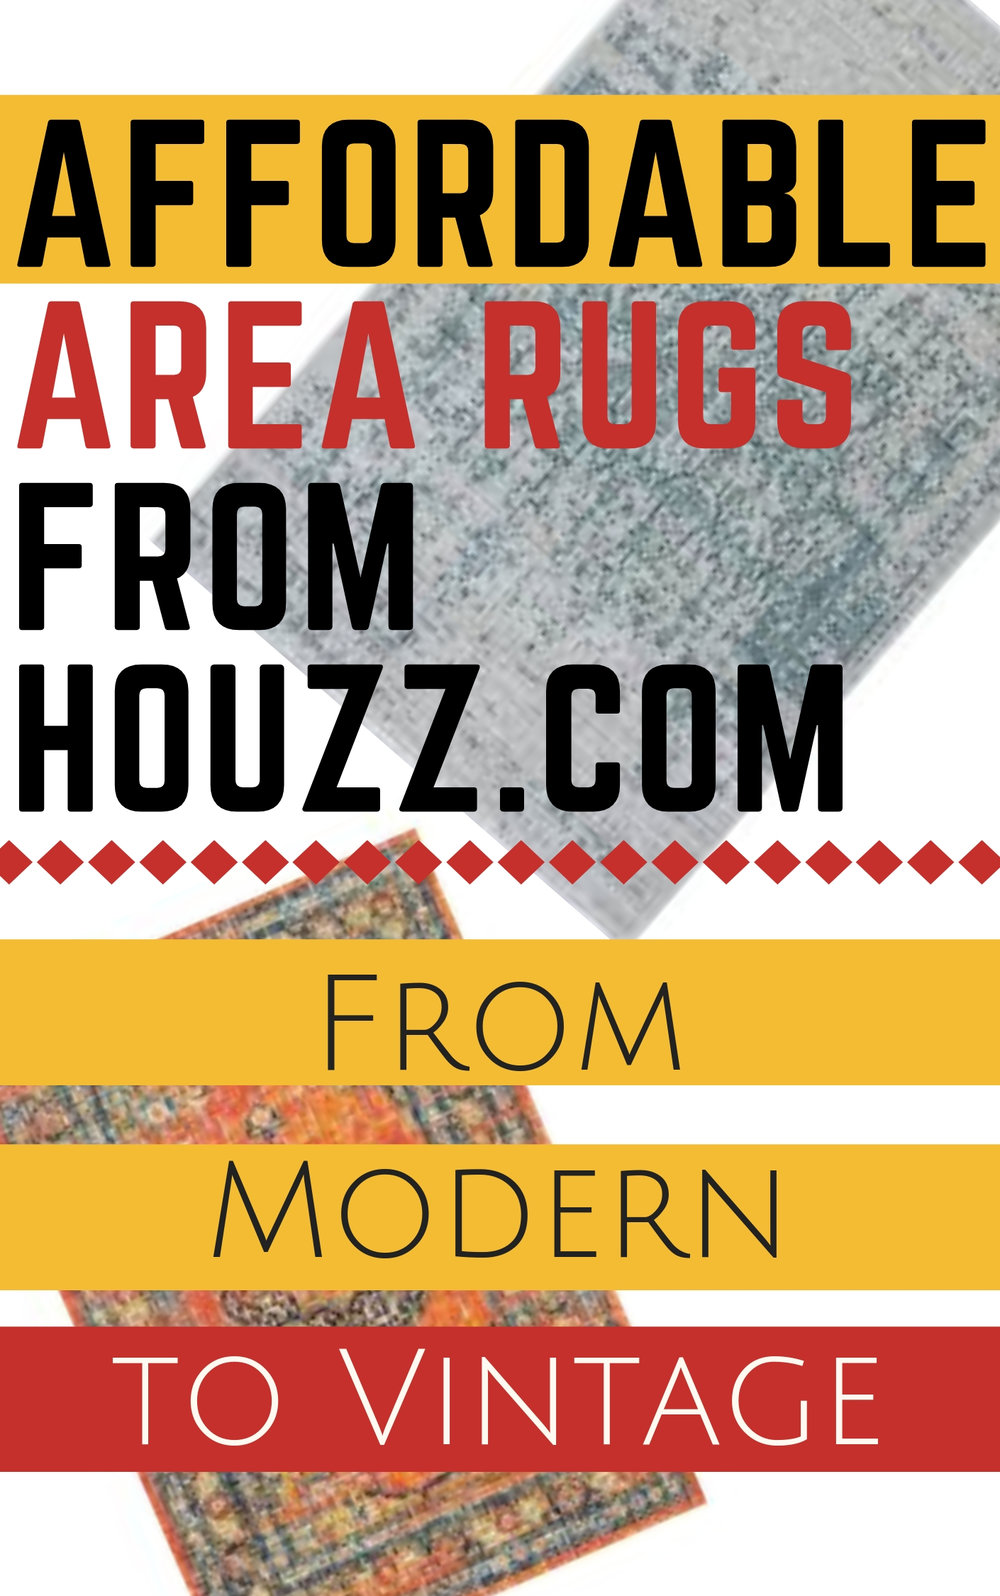 affordable area rugs for your bedroom or living room. Contemporary, vintage, rustic, modern, traditional, classic, french, or bohemian. These rugs I specifically picked out as favorites, are at your disposal, ranging in every style and color. #arearugs #livingroomrugs #rugs #2018rugs #pickingarug